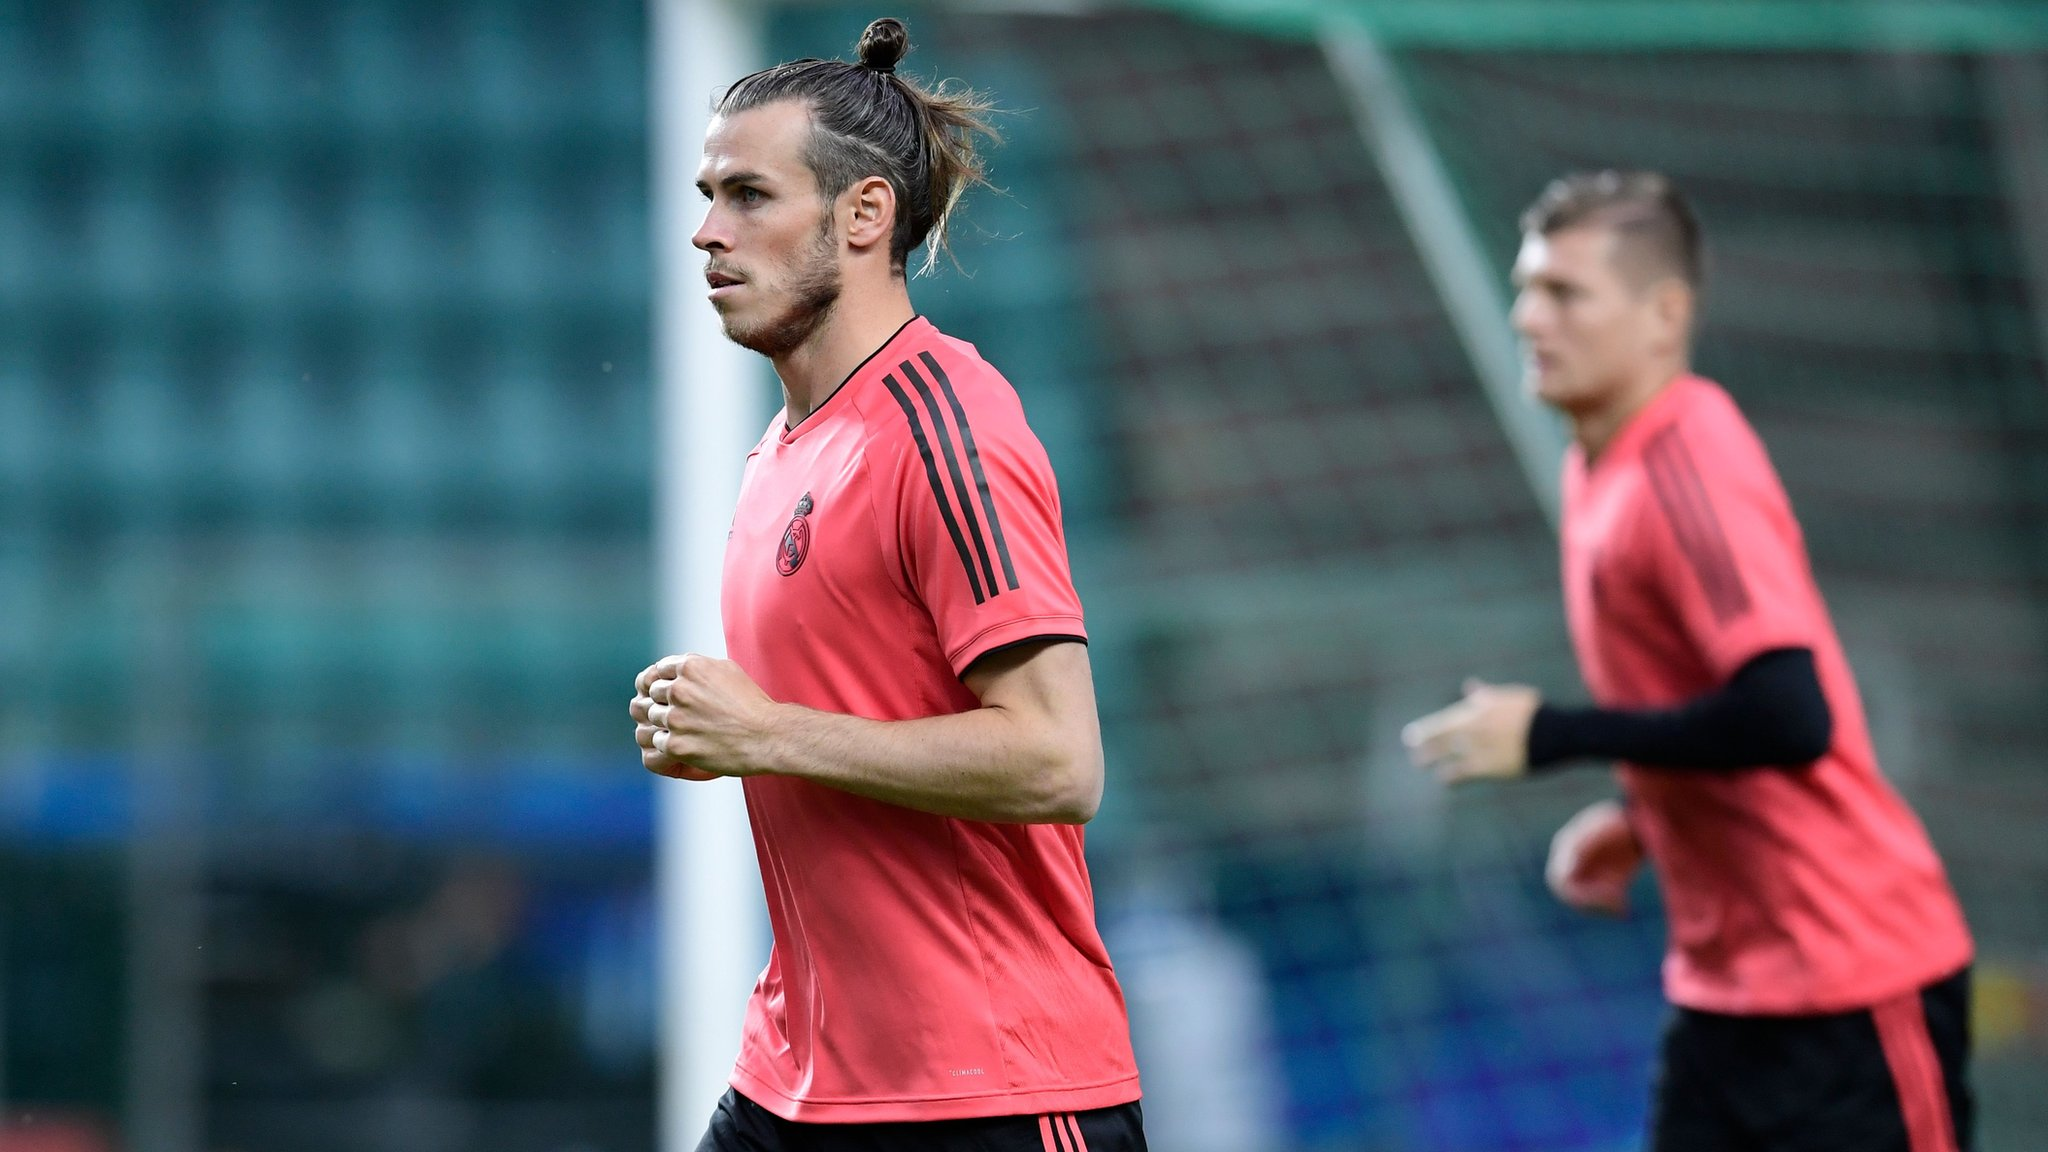 Gareth Bale has a key role to play at Real Madrid - Lopetegui